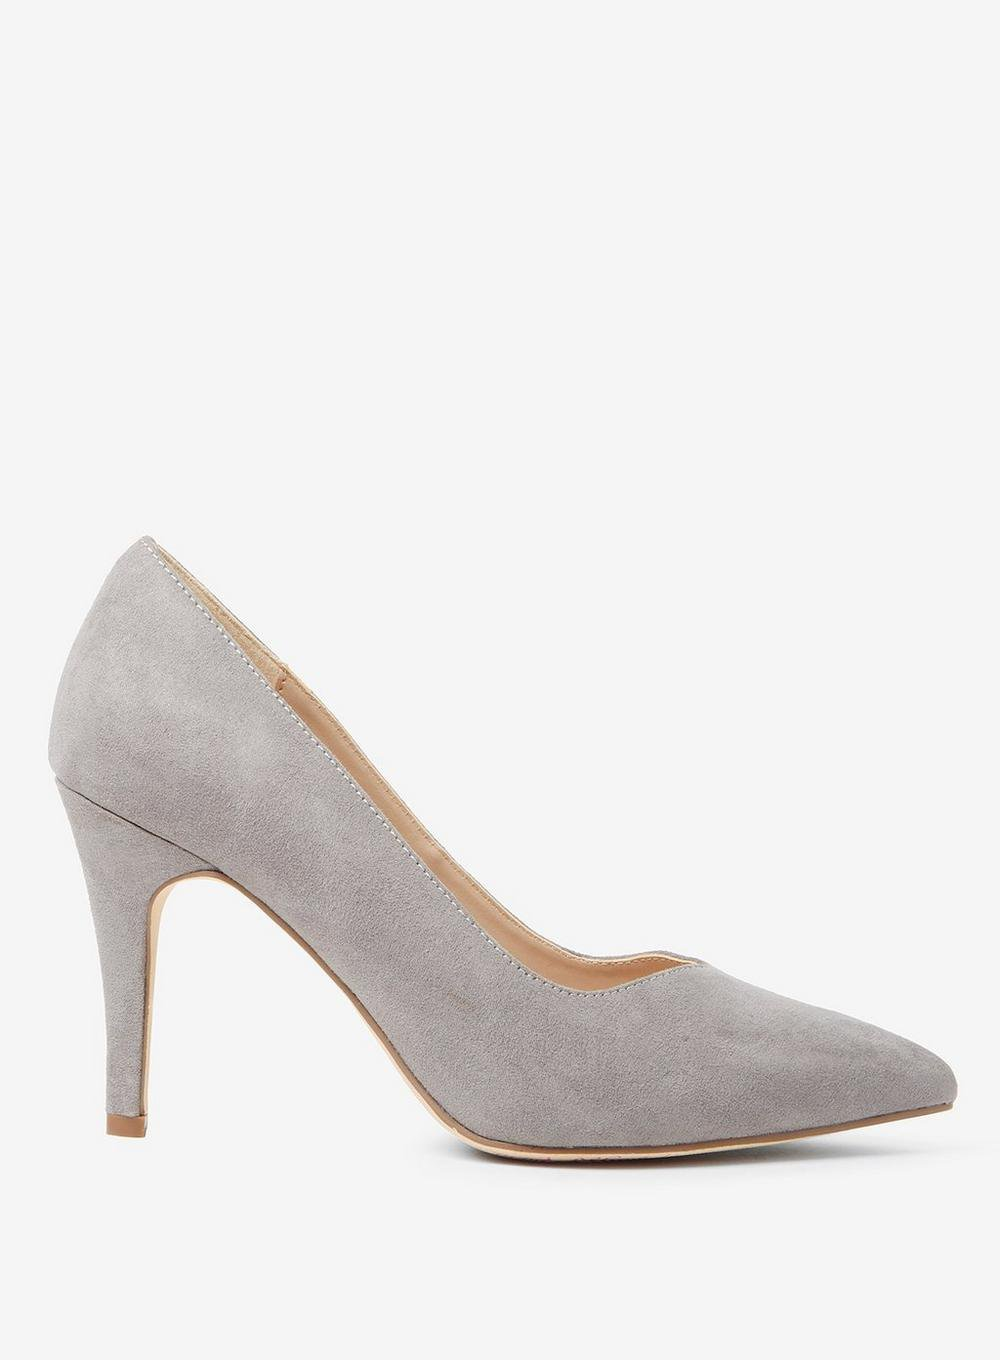 Wide Fit Grey Microfibre 'Drake' Court Shoes - View All New In - New In - Dorothy Perkins Europe